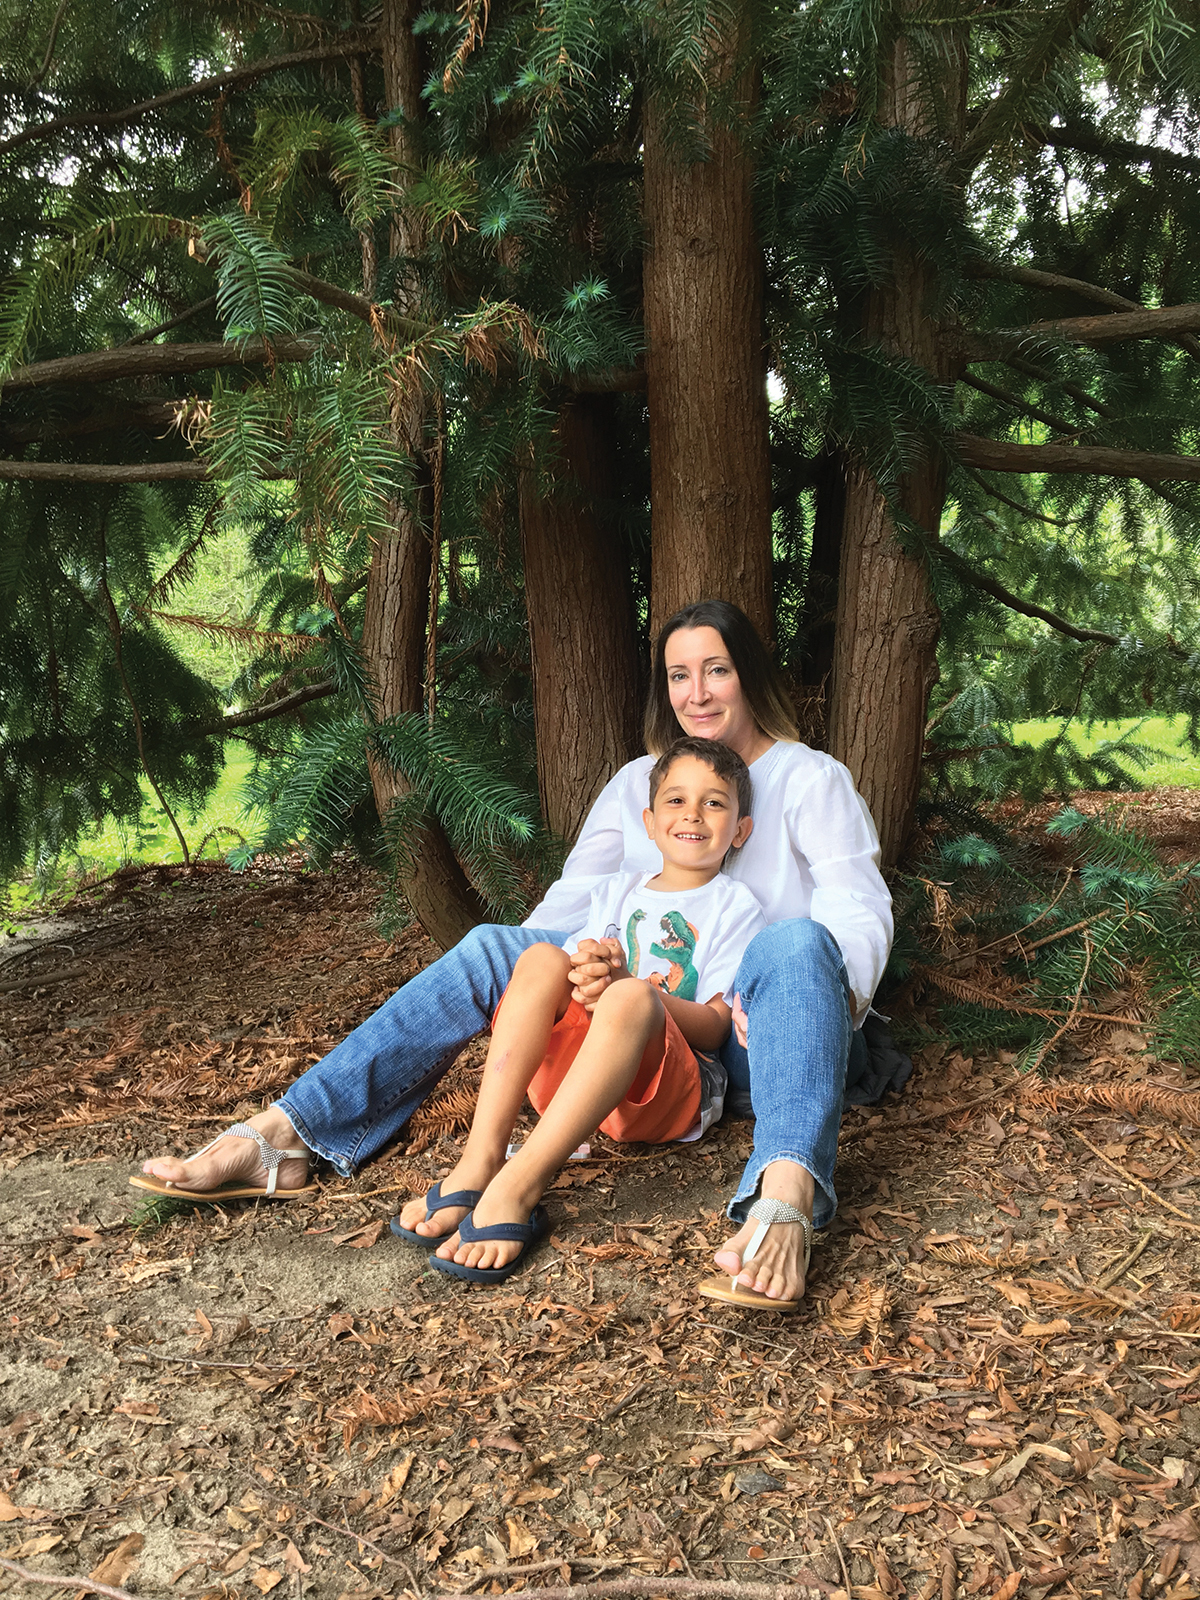 FEELING AT HOME  Mom and Max at the arboretum in Holmdel Park, NJ. Max thinks we need to save as many trees as possible, and not cut them down. We couldn't agree more.